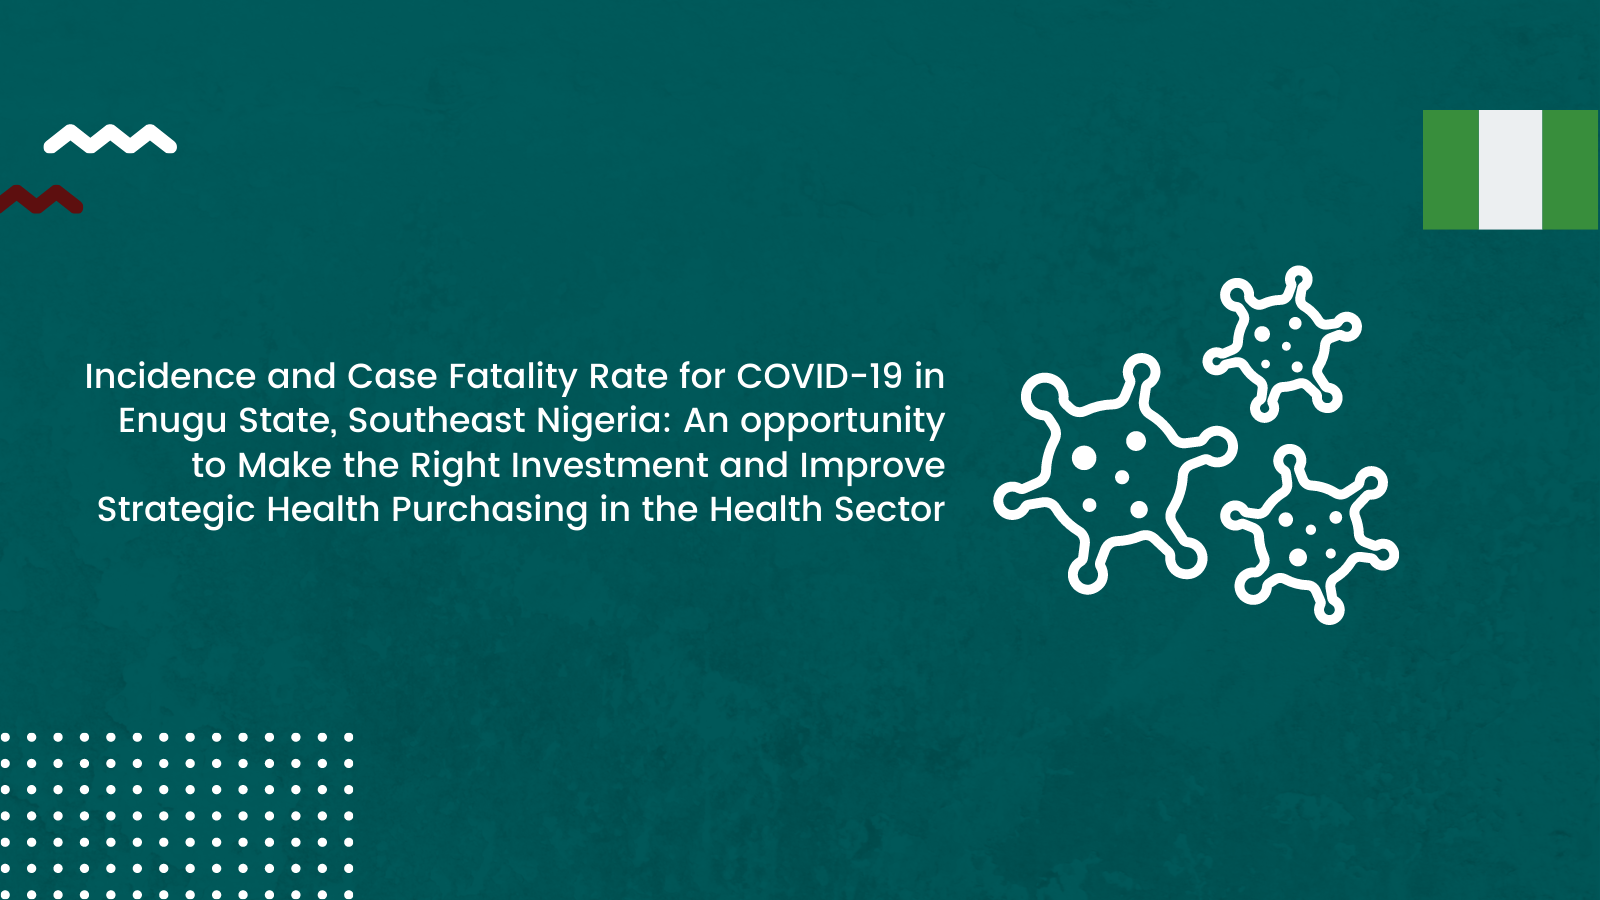 Incidence and Case Fatality Rate for COVID-19 in Enugu State, Southeast Nigeria: An opportunity to Make the Right Investment and Improve Strategic Health Purchasing in the Health Sector